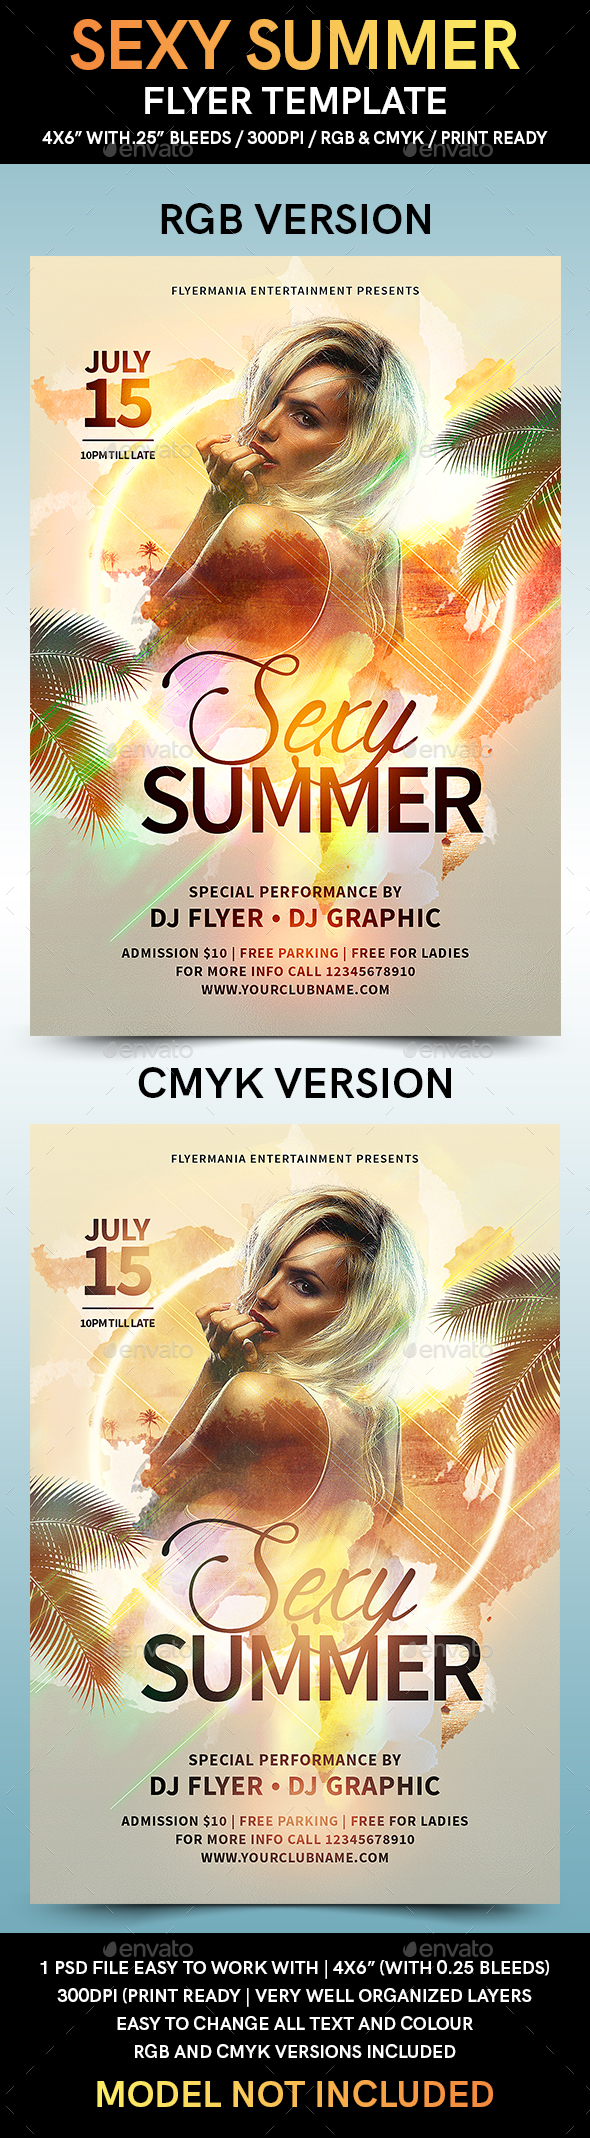 Sexy Summer Flyer Template - Flyers Print Templates